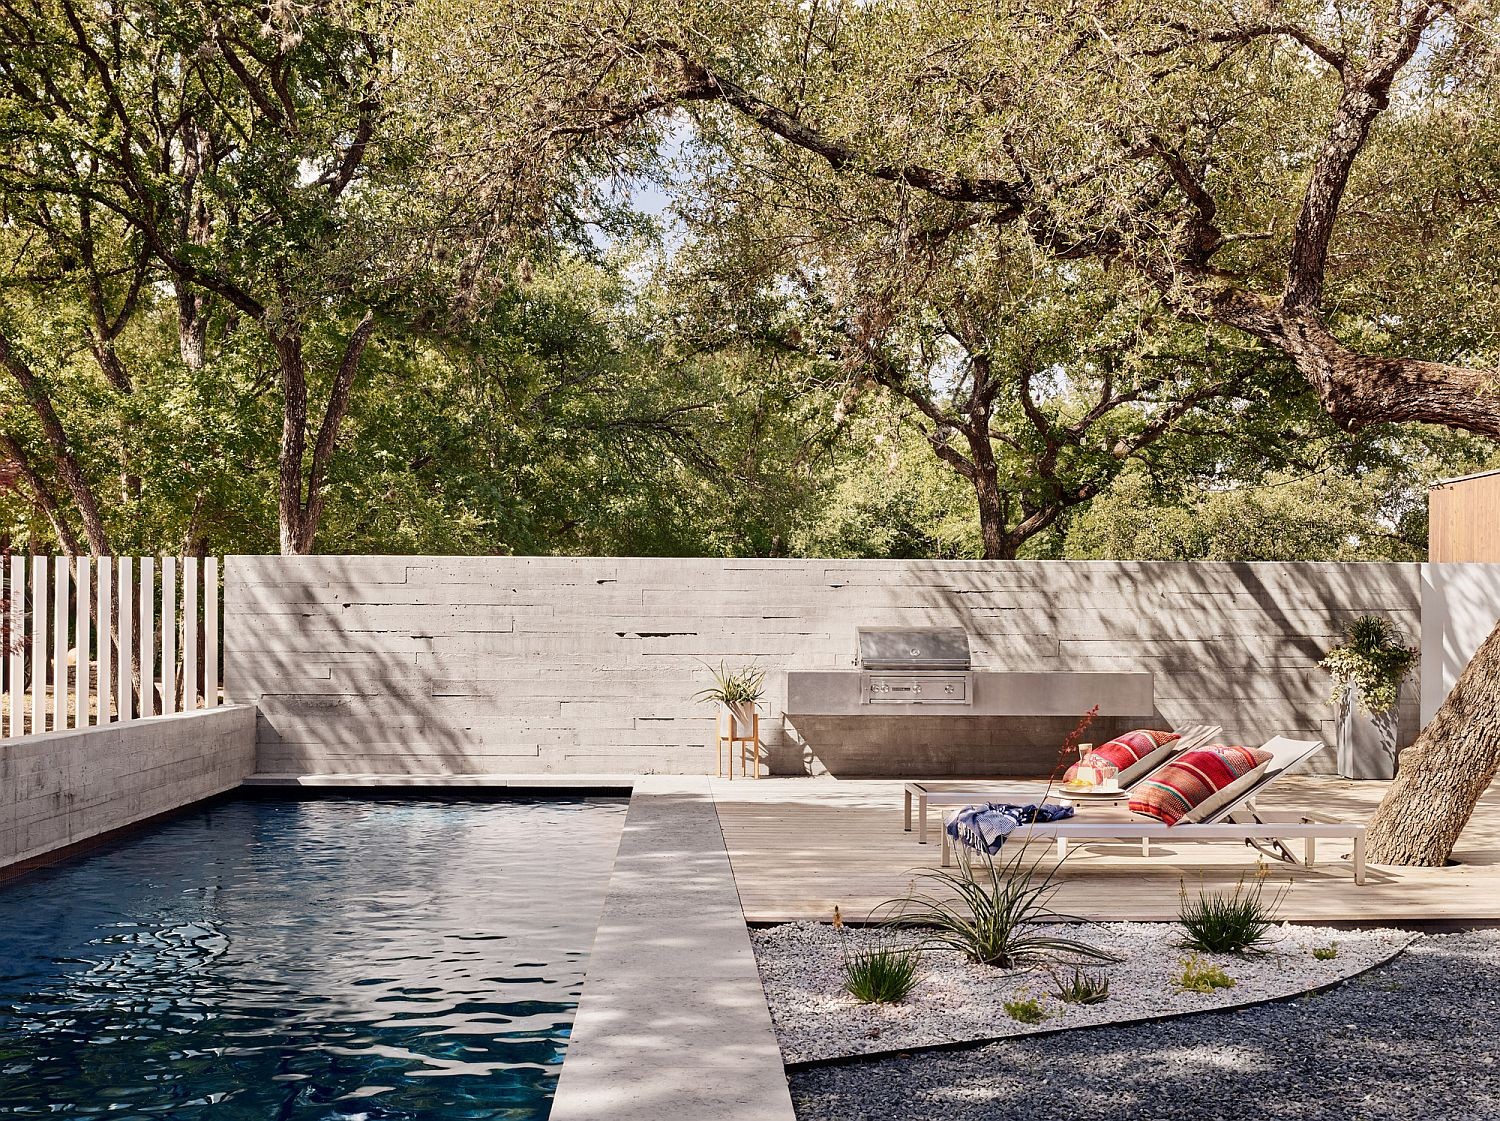 Pool area and outdoor hangout at the Sugar Shack Residence